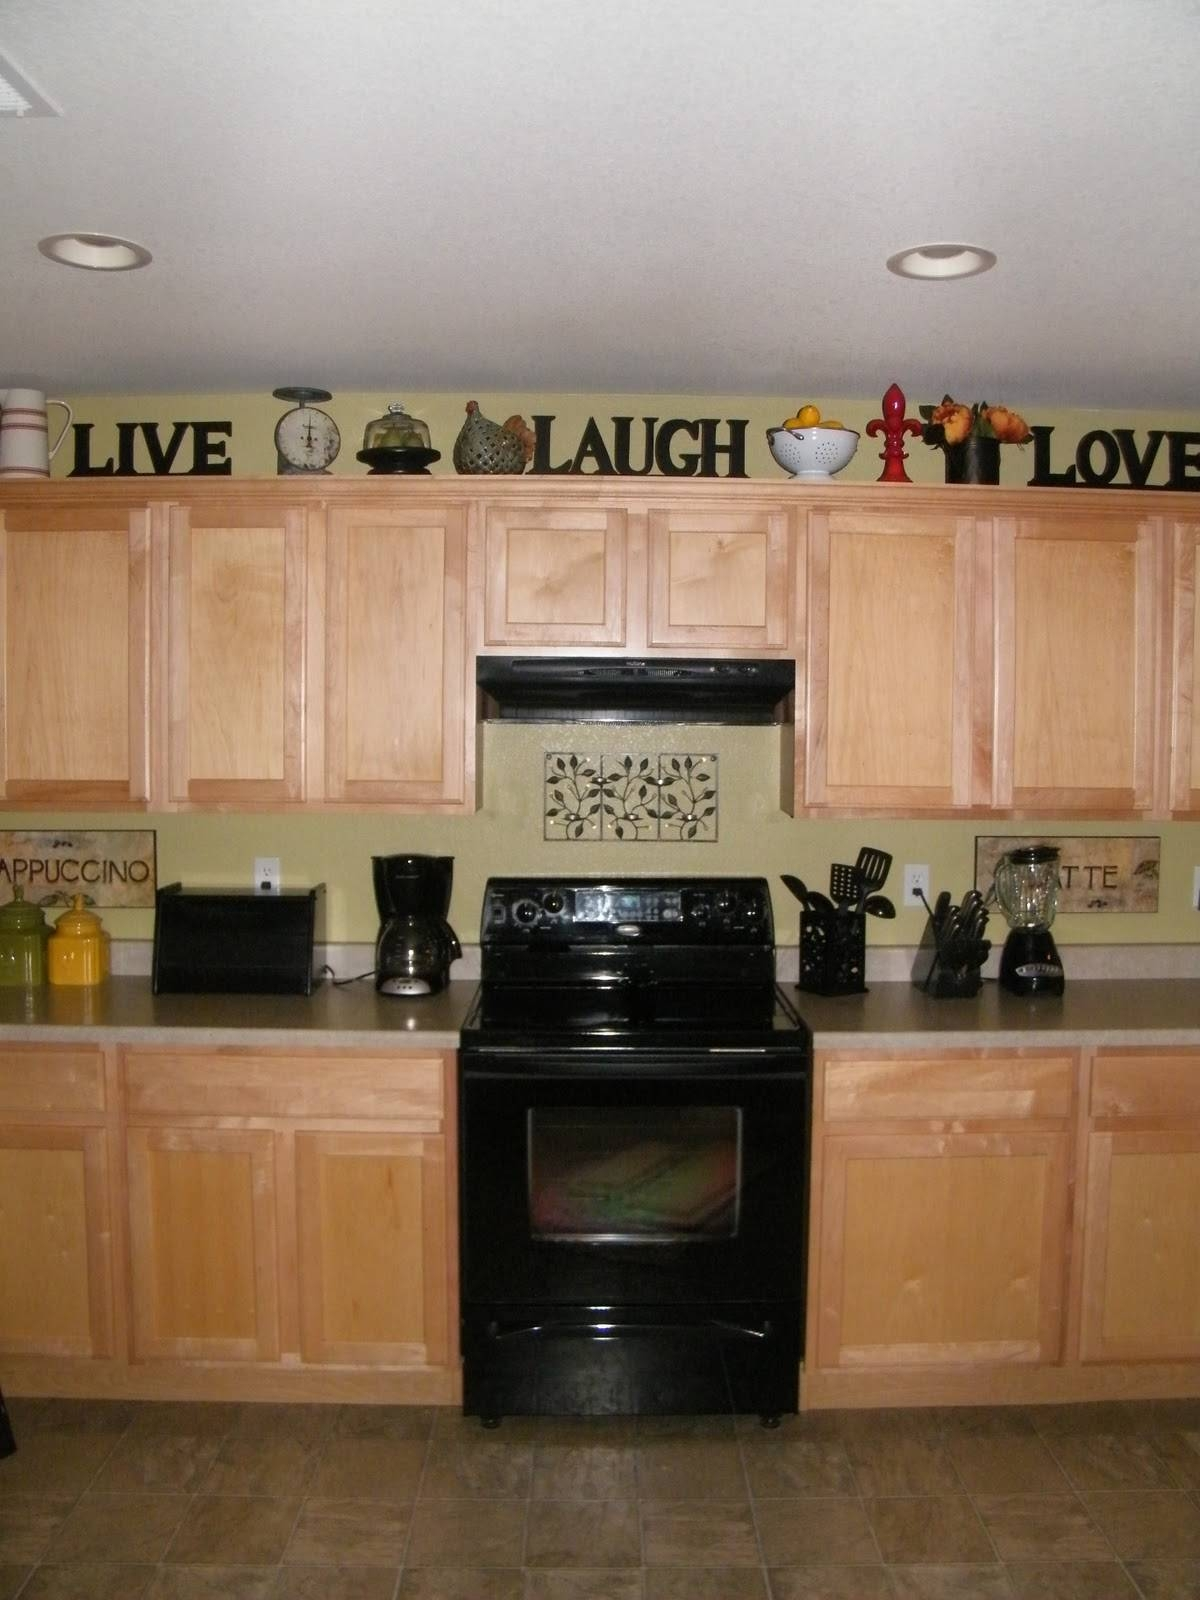 Live Laugh Love Picture Frame Walmart Live Laugh Love Wall Within Most Up To Date Live Love Laugh Metal Wall Decor (View 22 of 25)